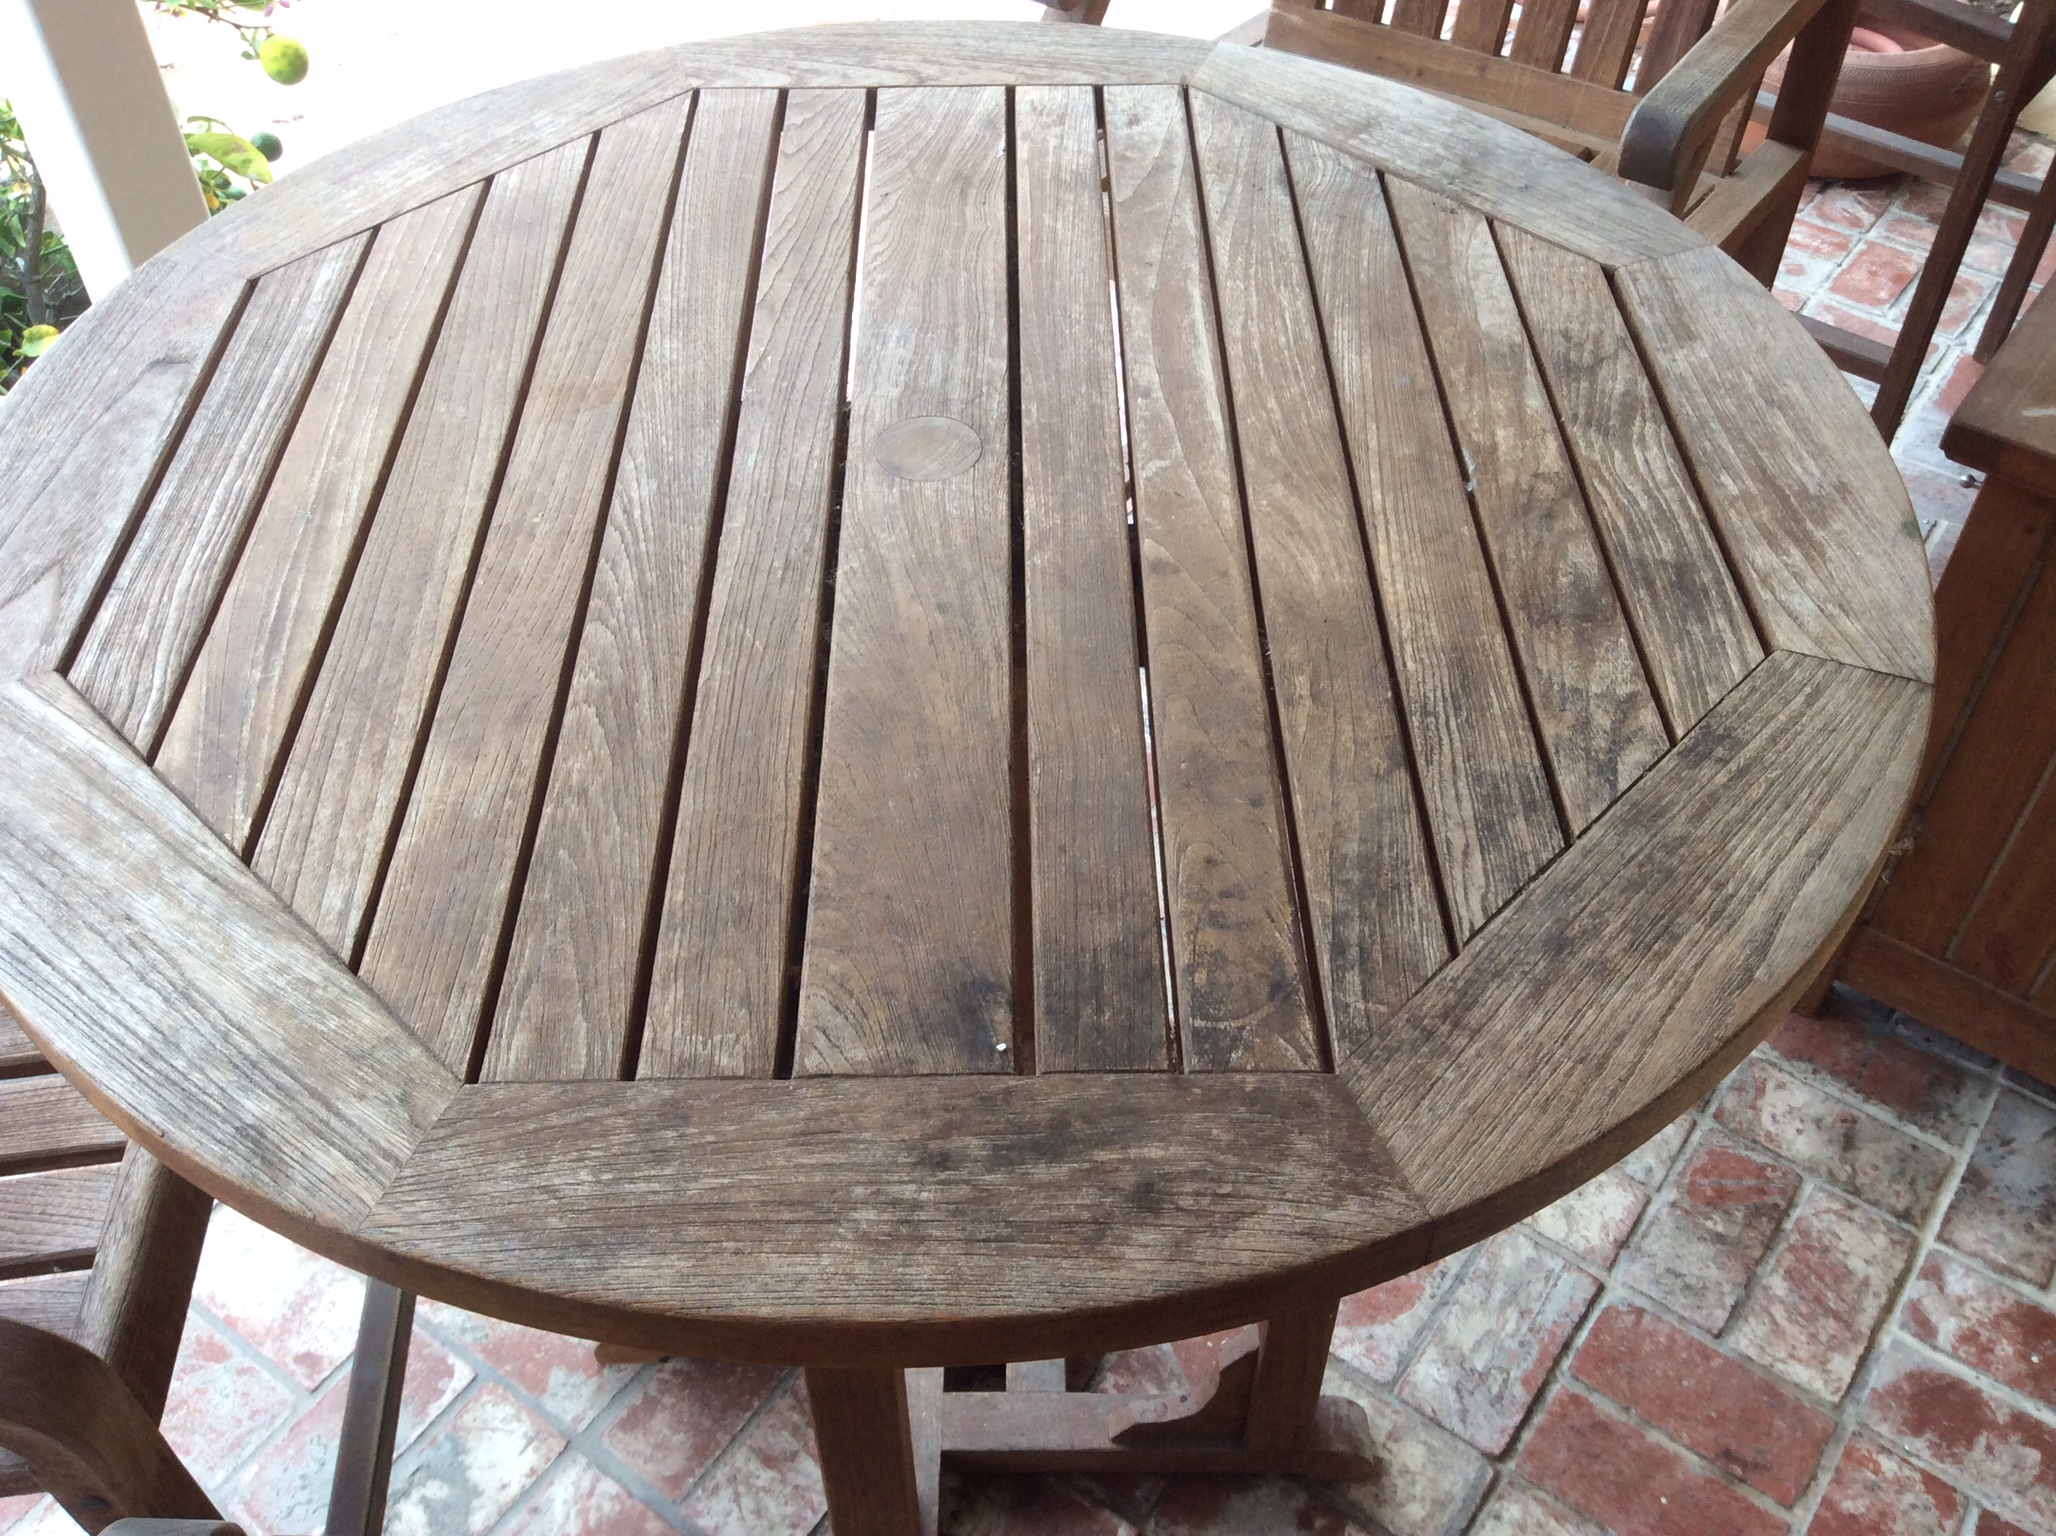 Teak Wood Furniture ~ Teak furniture for outdoor uses darbylanefurniture